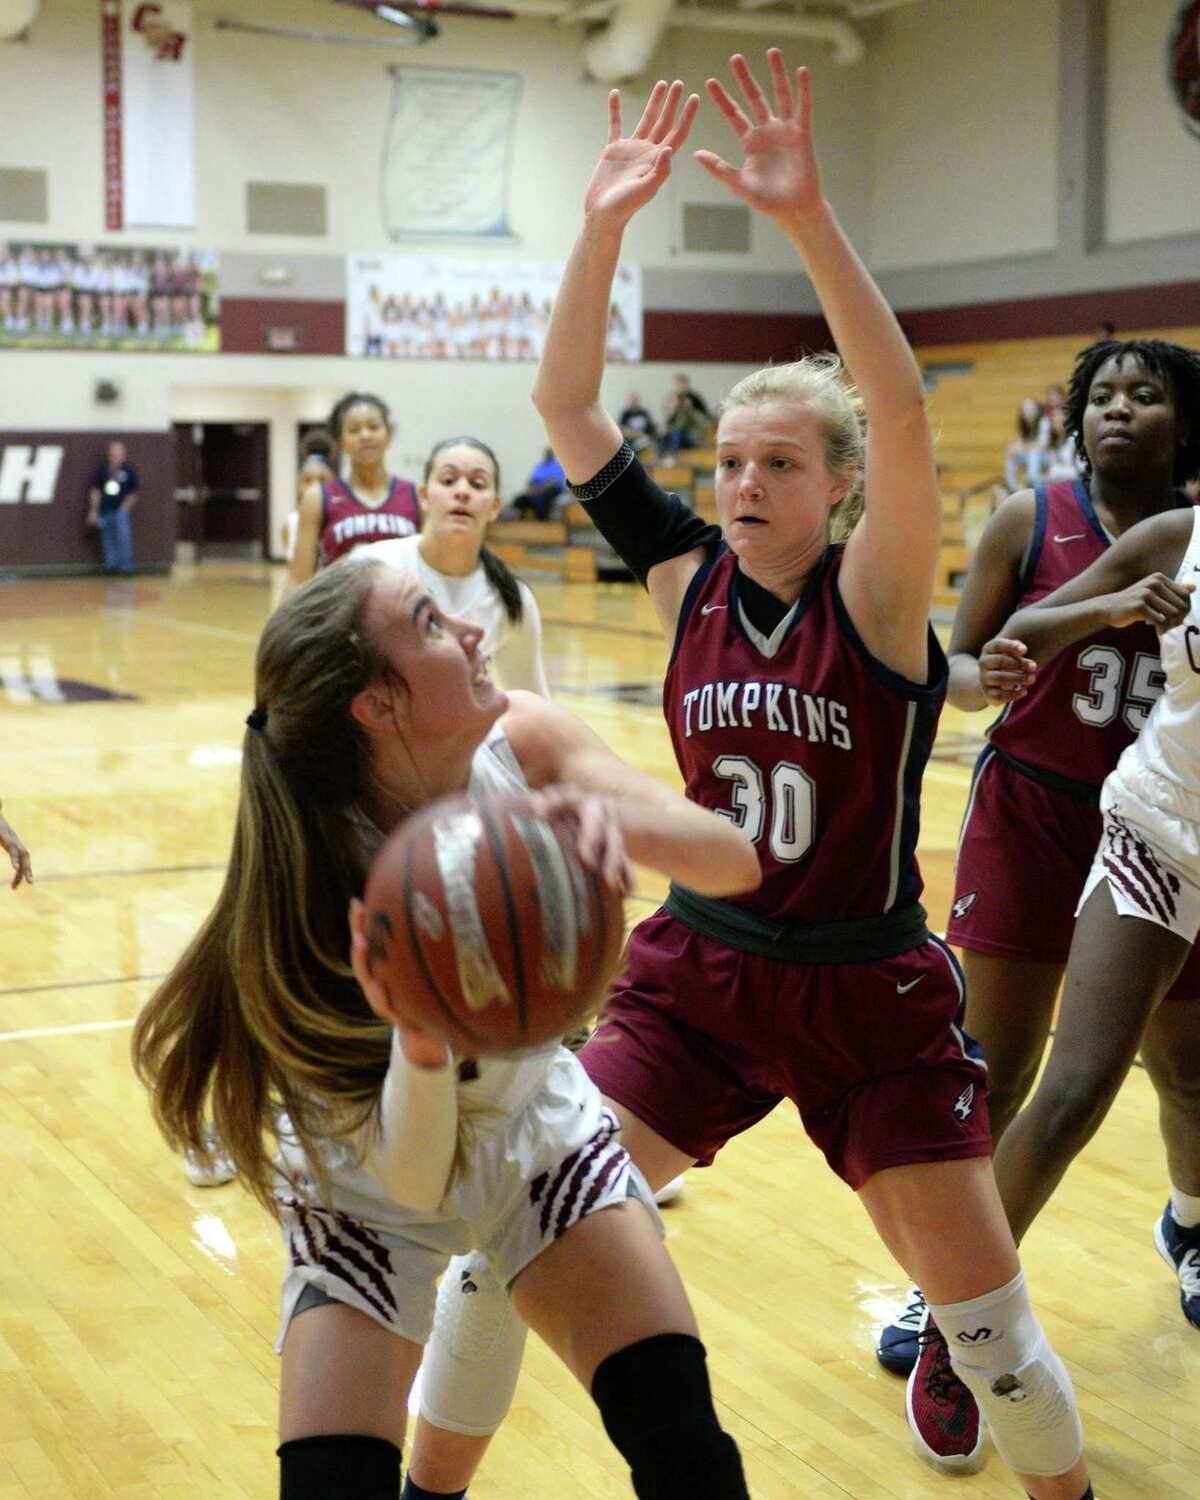 MacKenzie Durnford (30) of Tompkins defends against a shot by Catherine Hursh (1) of Cinco Ranch during the first quarter of a 6A Region III District 19 Girls basketball game between the Cinco Ranch Cougars and the Tompkins Falcons on Friday, January 3, 2020 at Cinco Ranch HS, Katy, TX.